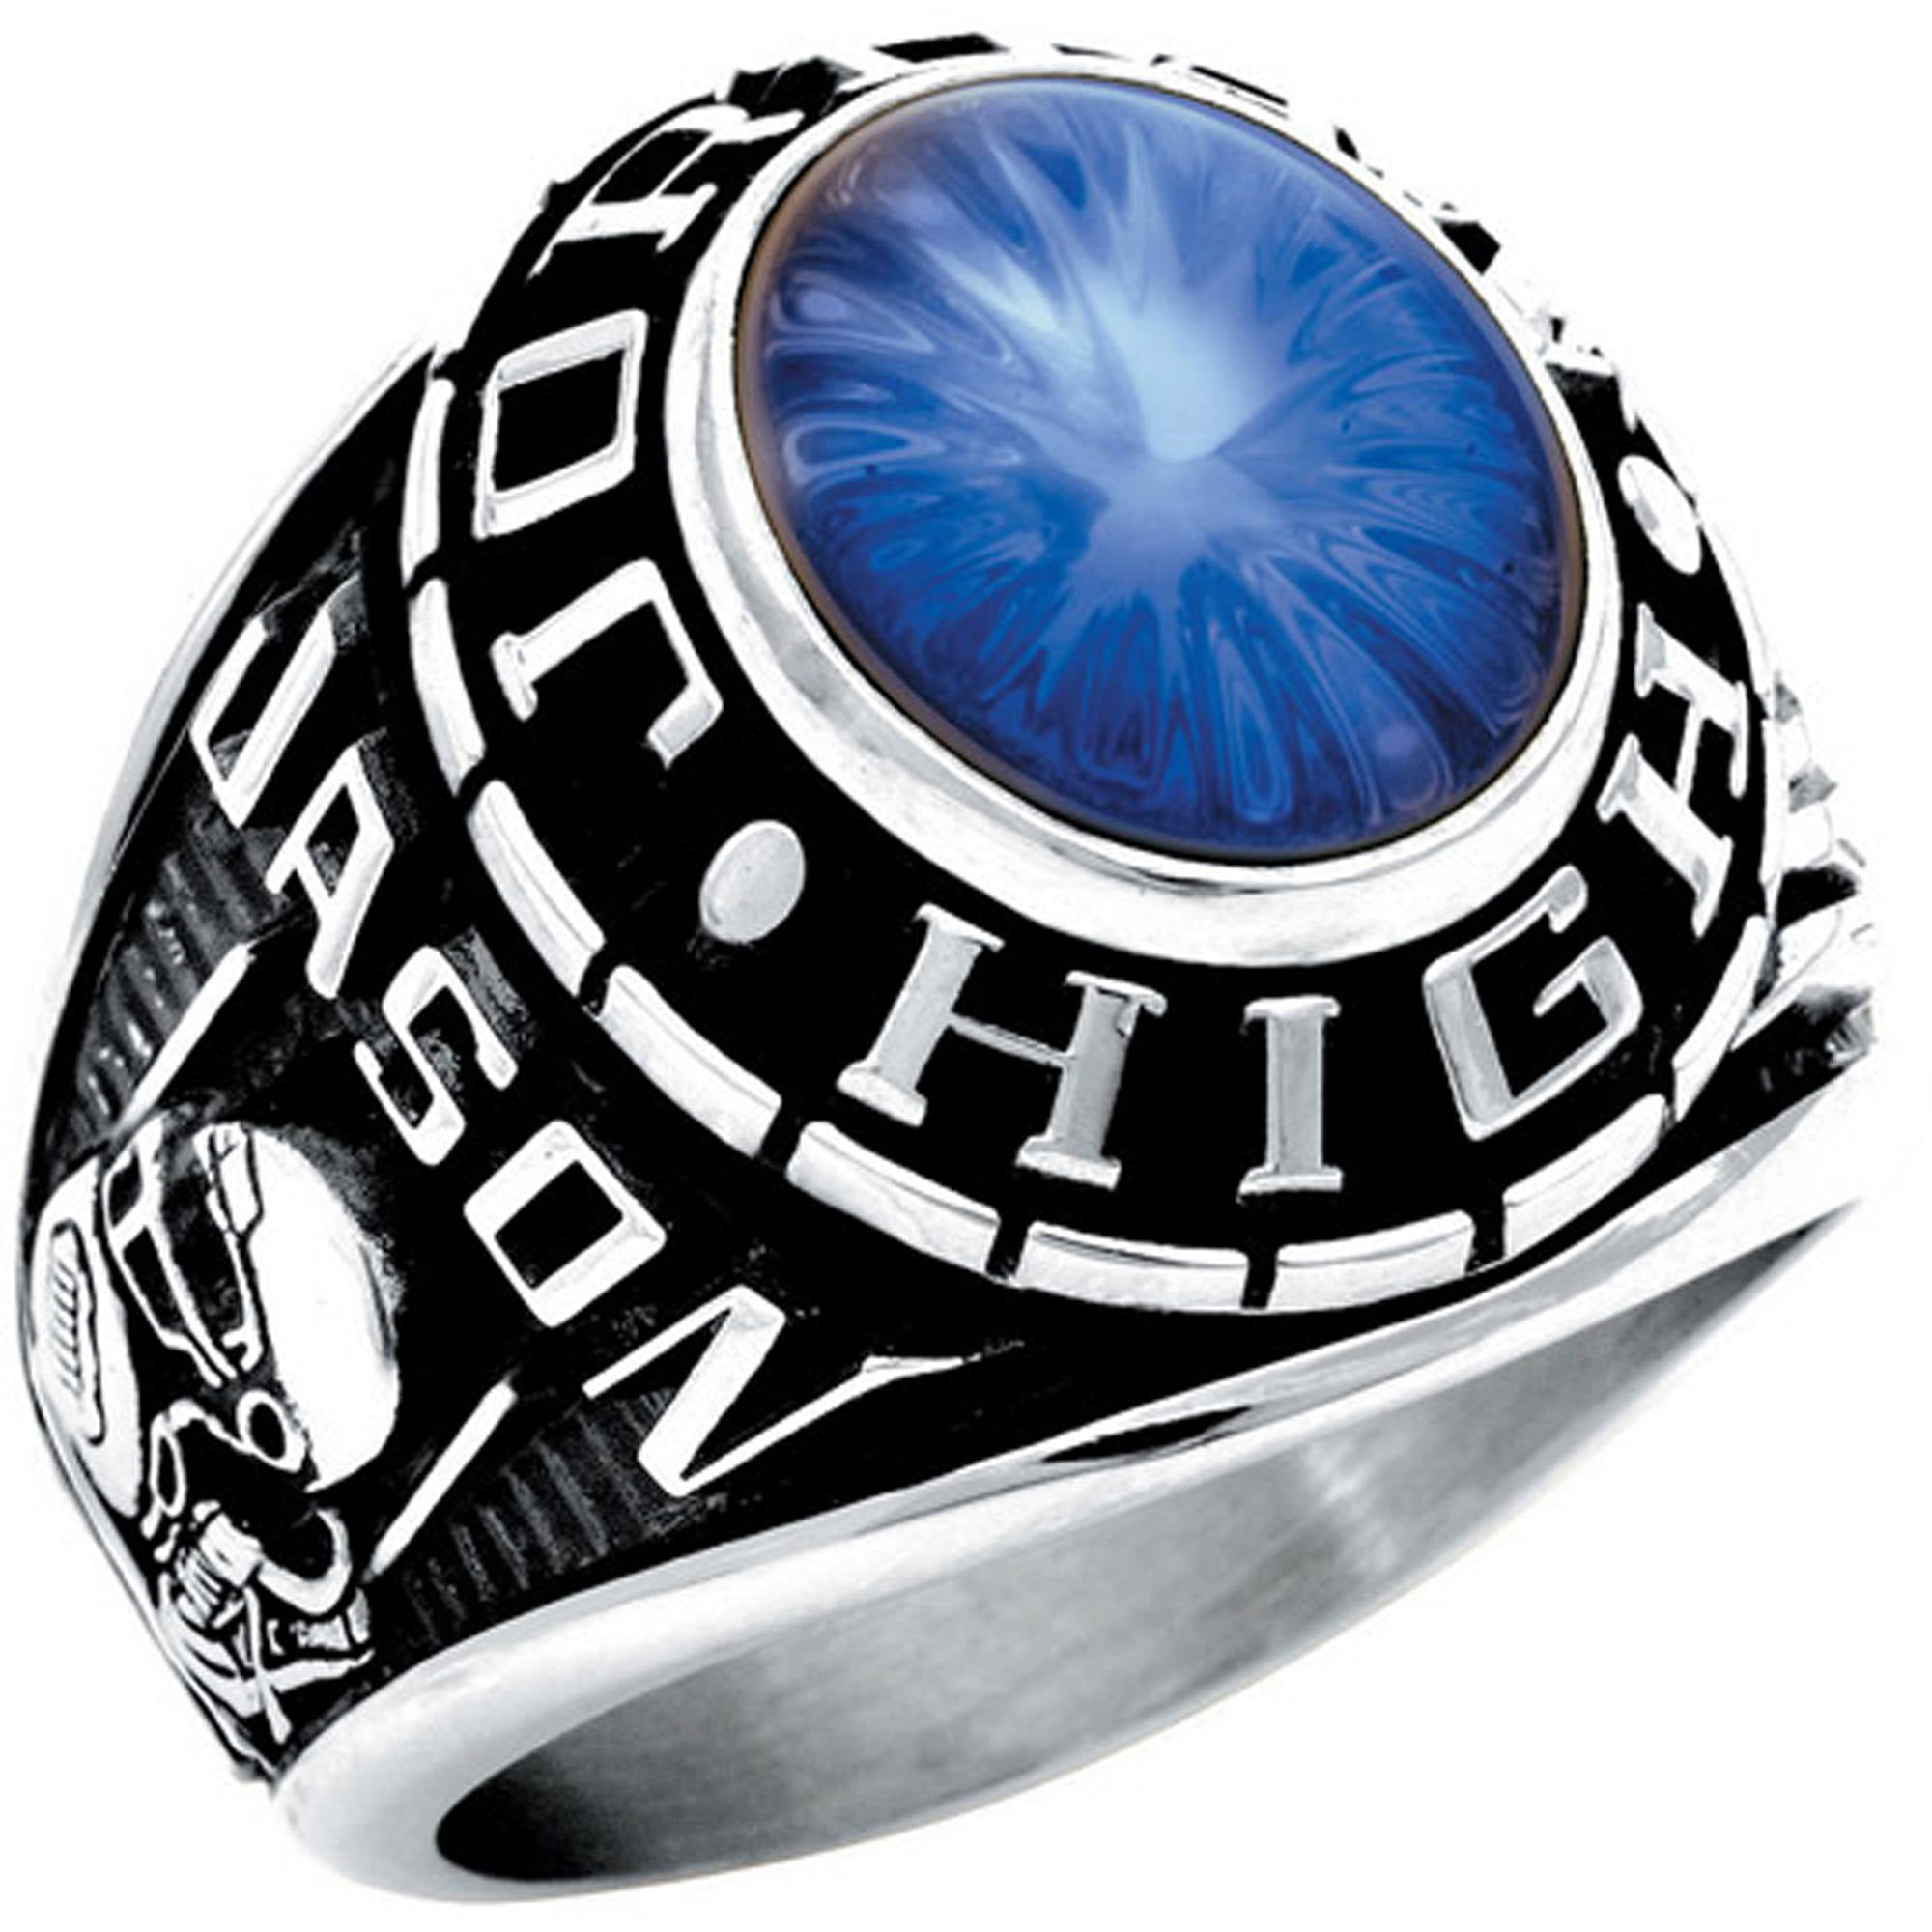 champ athletes championship and design rings custom ring school balfour